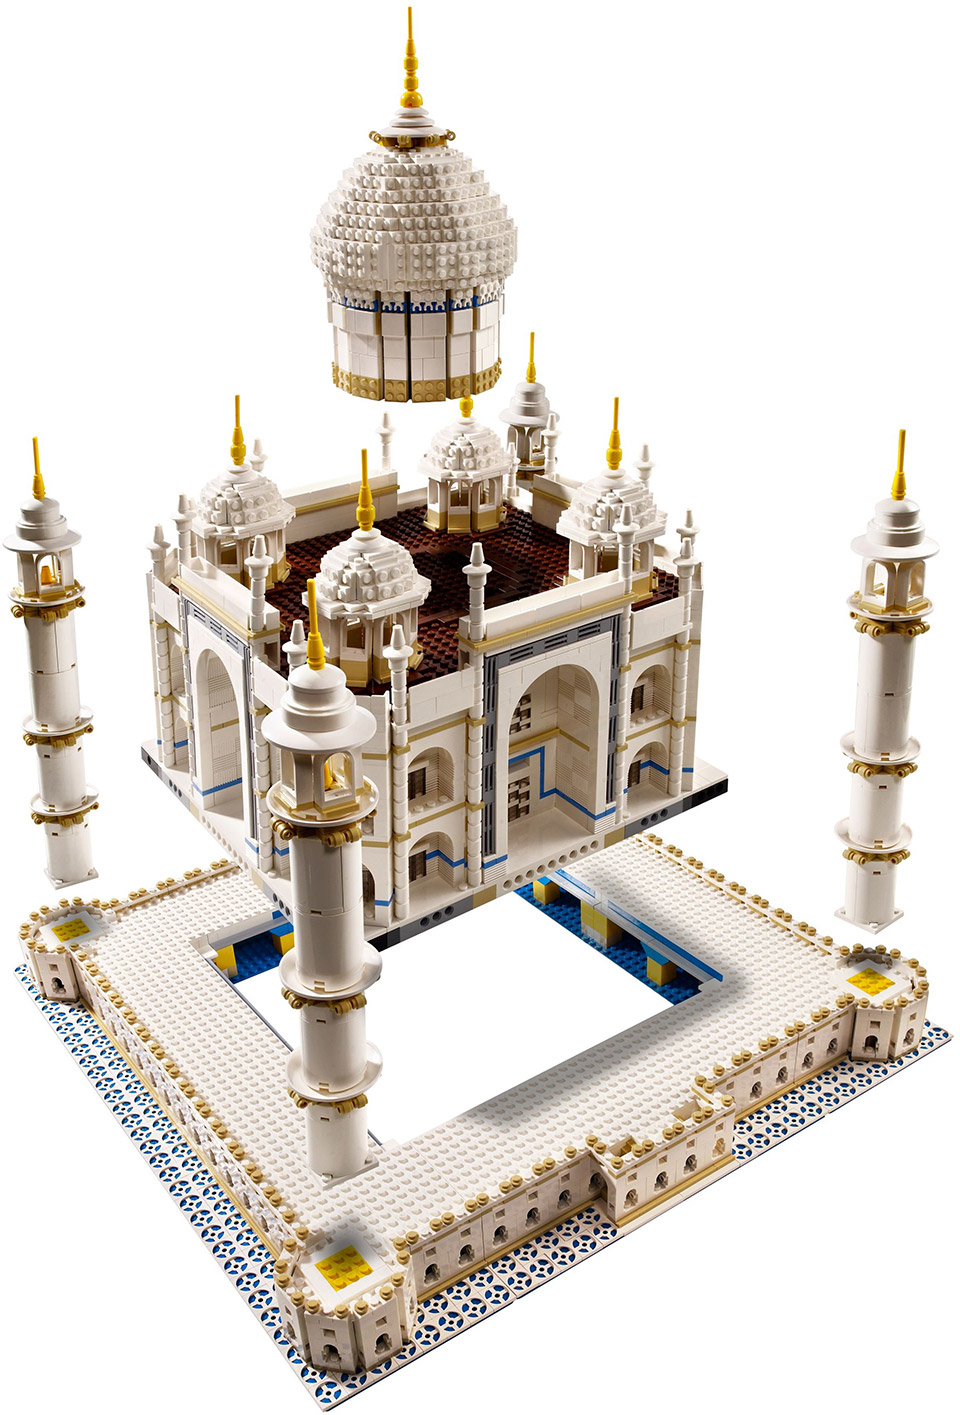 Lego Is Going To Rerelease Its Rare And Coveted Taj Mahal Set